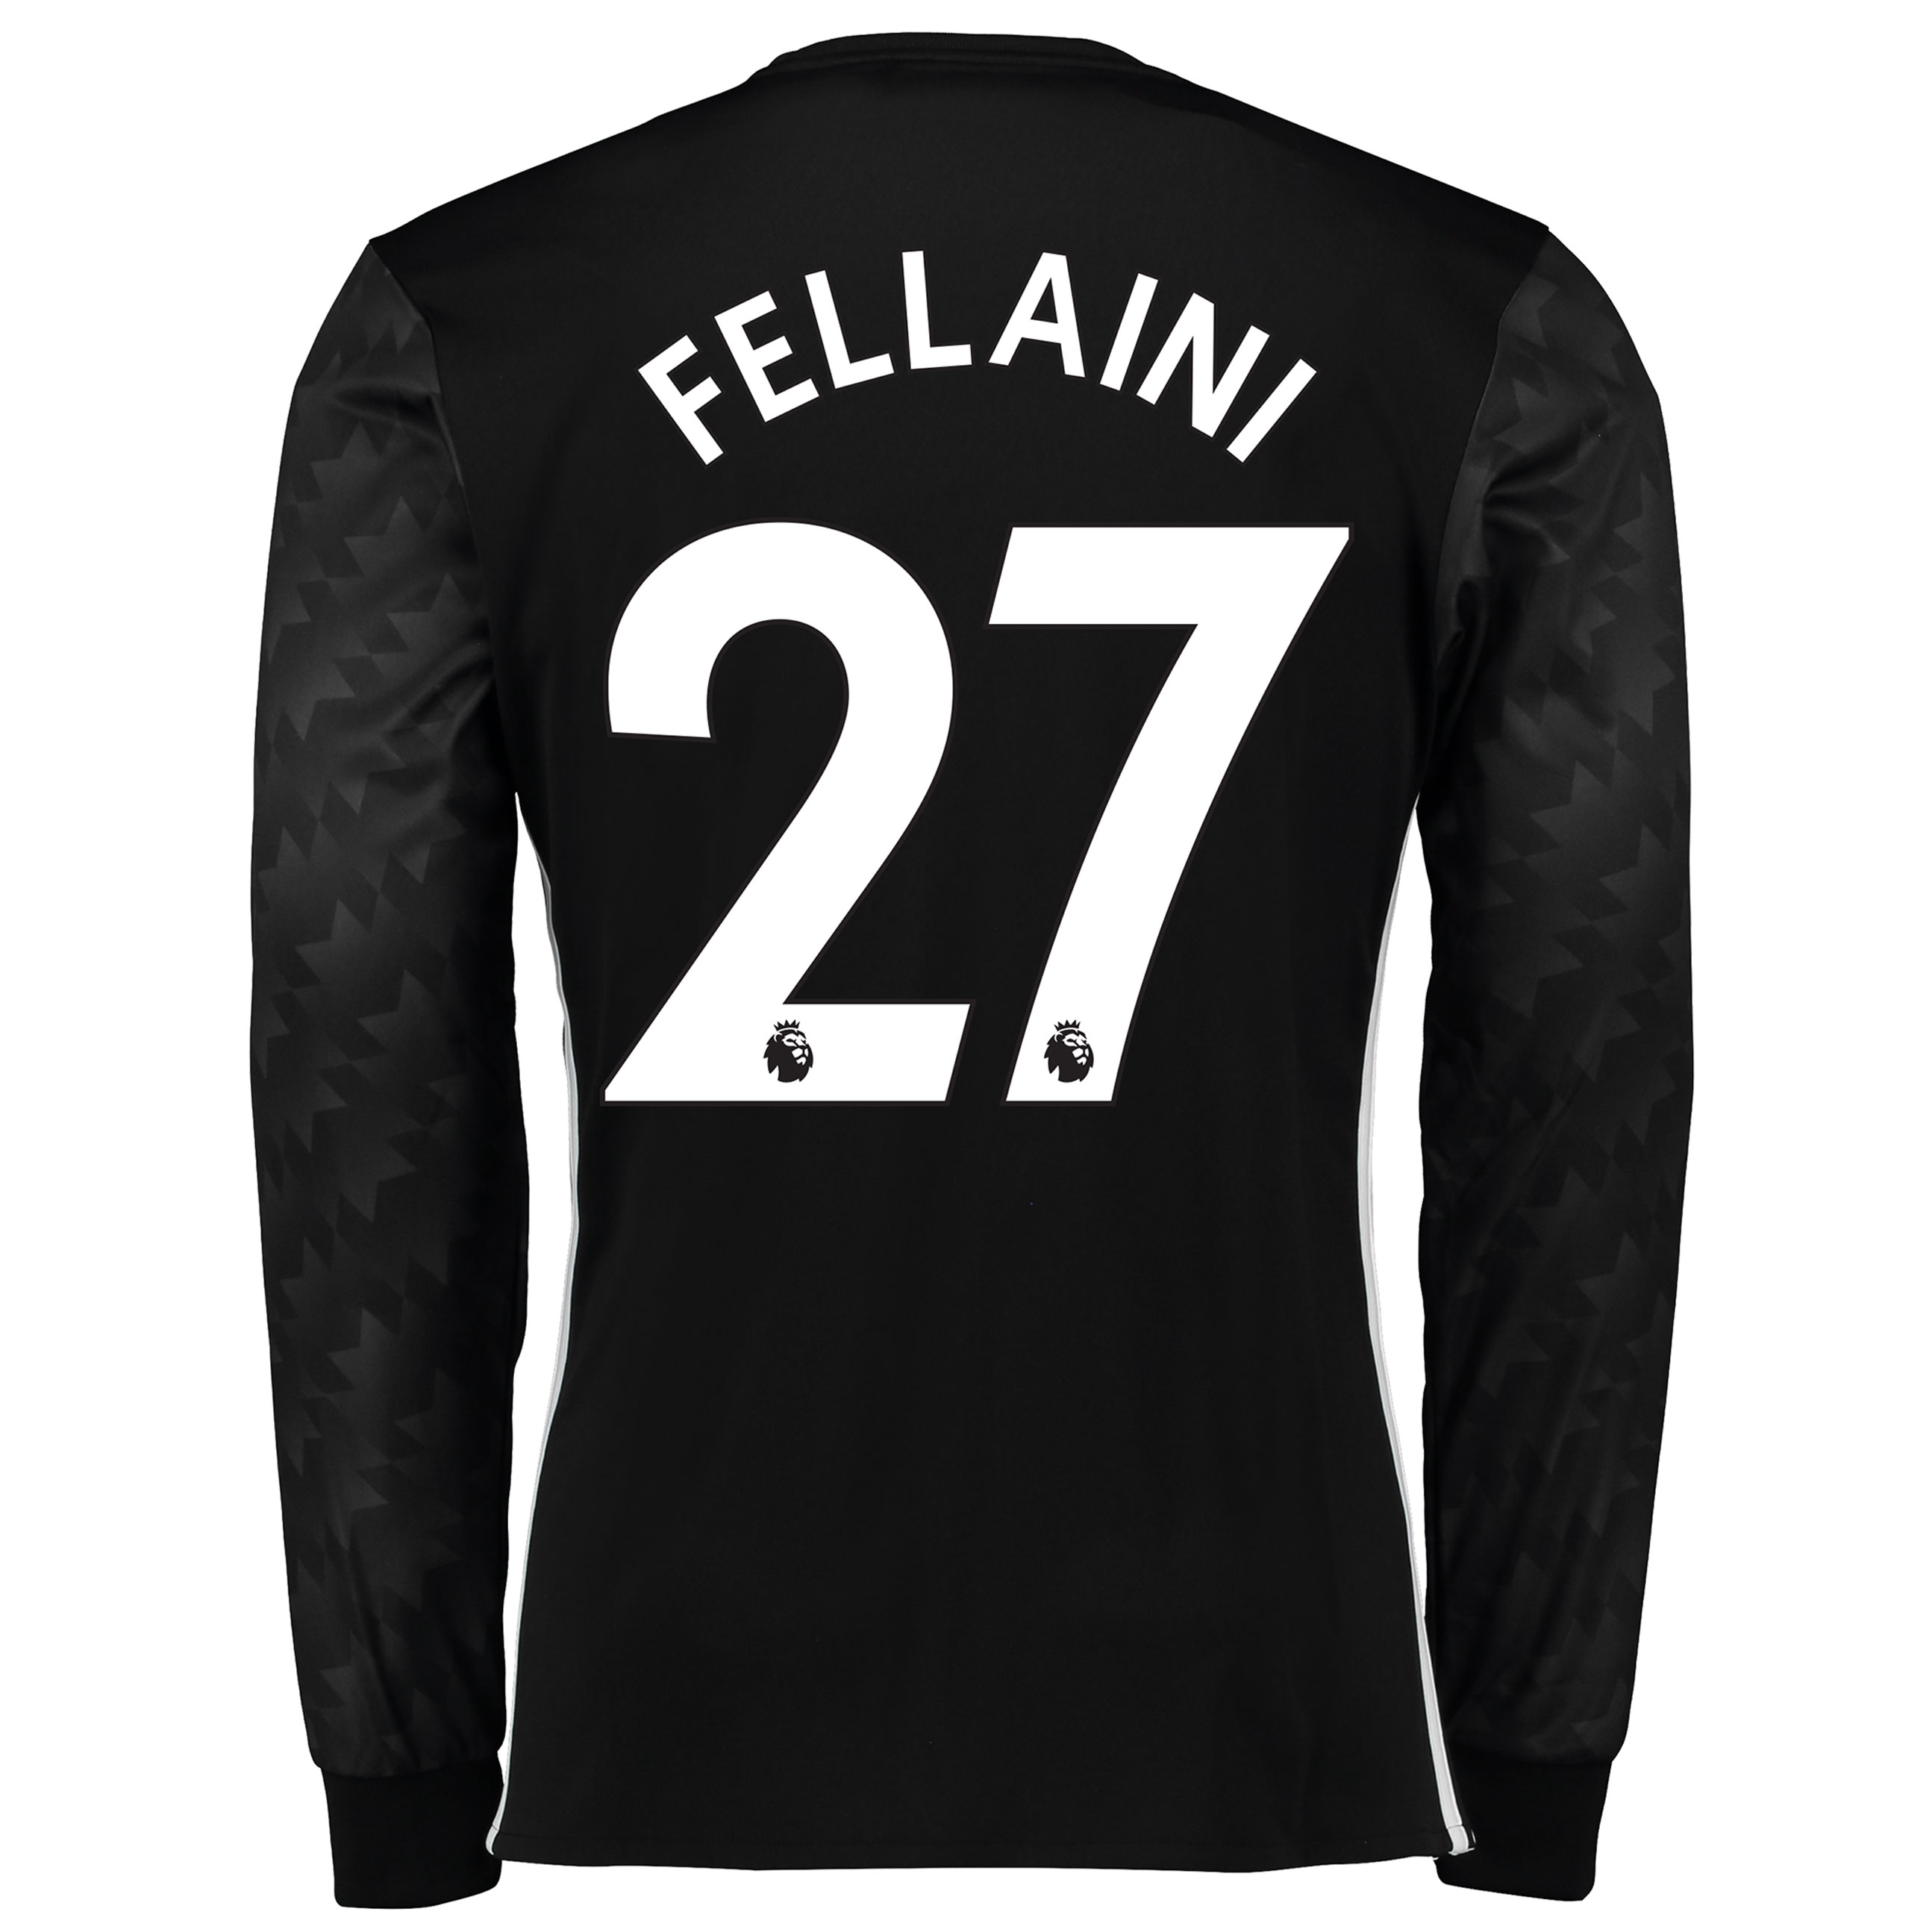 Manchester United Away Shirt 2017-18 - Long Sleeve with Fellaini 27 pr